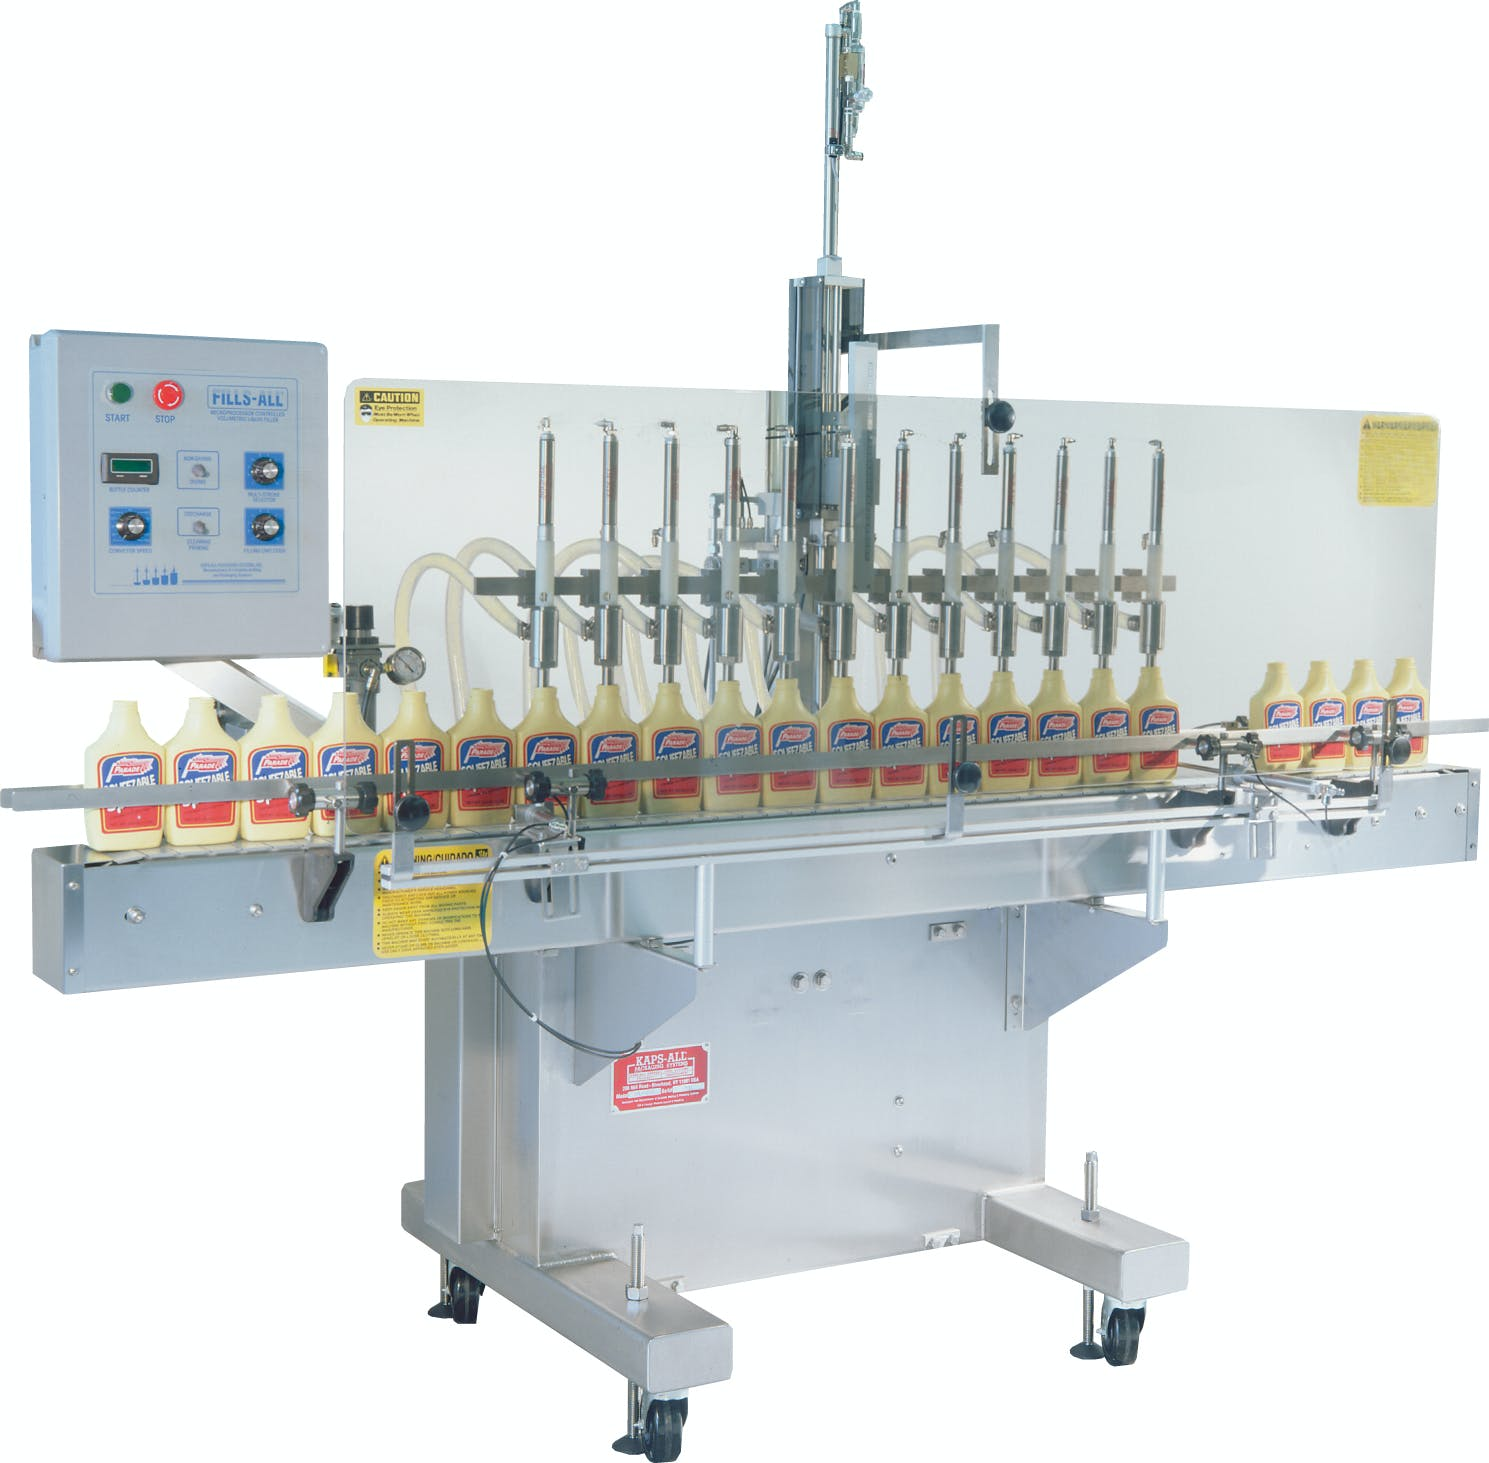 VOL-32 Volumetric Piston Filler Bottle filler sold by Kaps-All Packaging Systems, Inc.